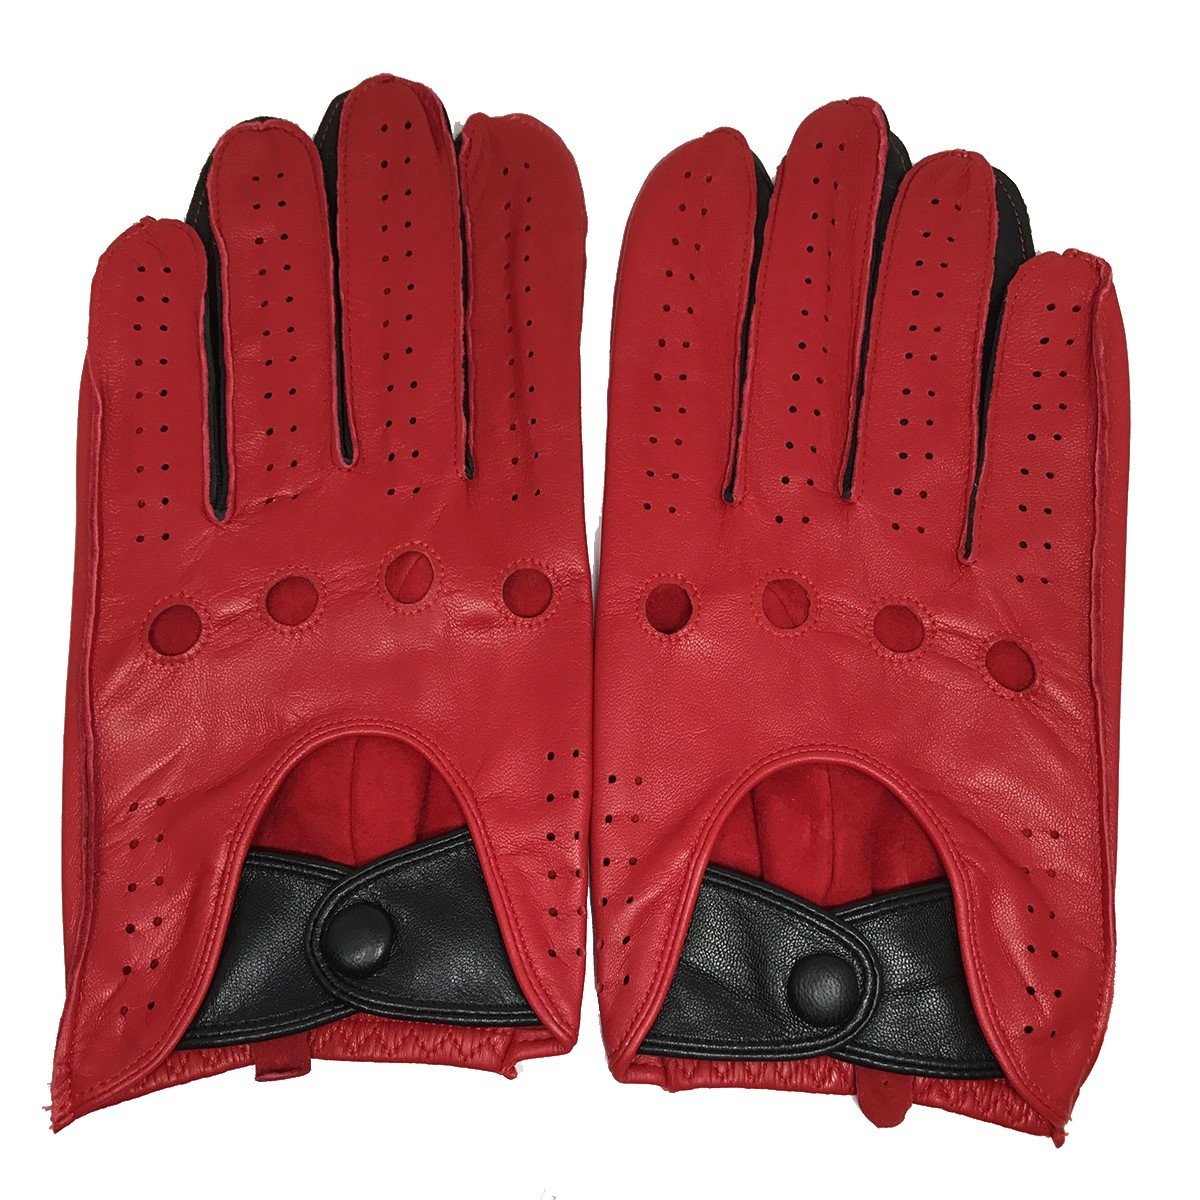 MATSU Men's Soft Motorcycle Driving Leather Gloves Available for Rivets DIY M1047 Matsu Gloves